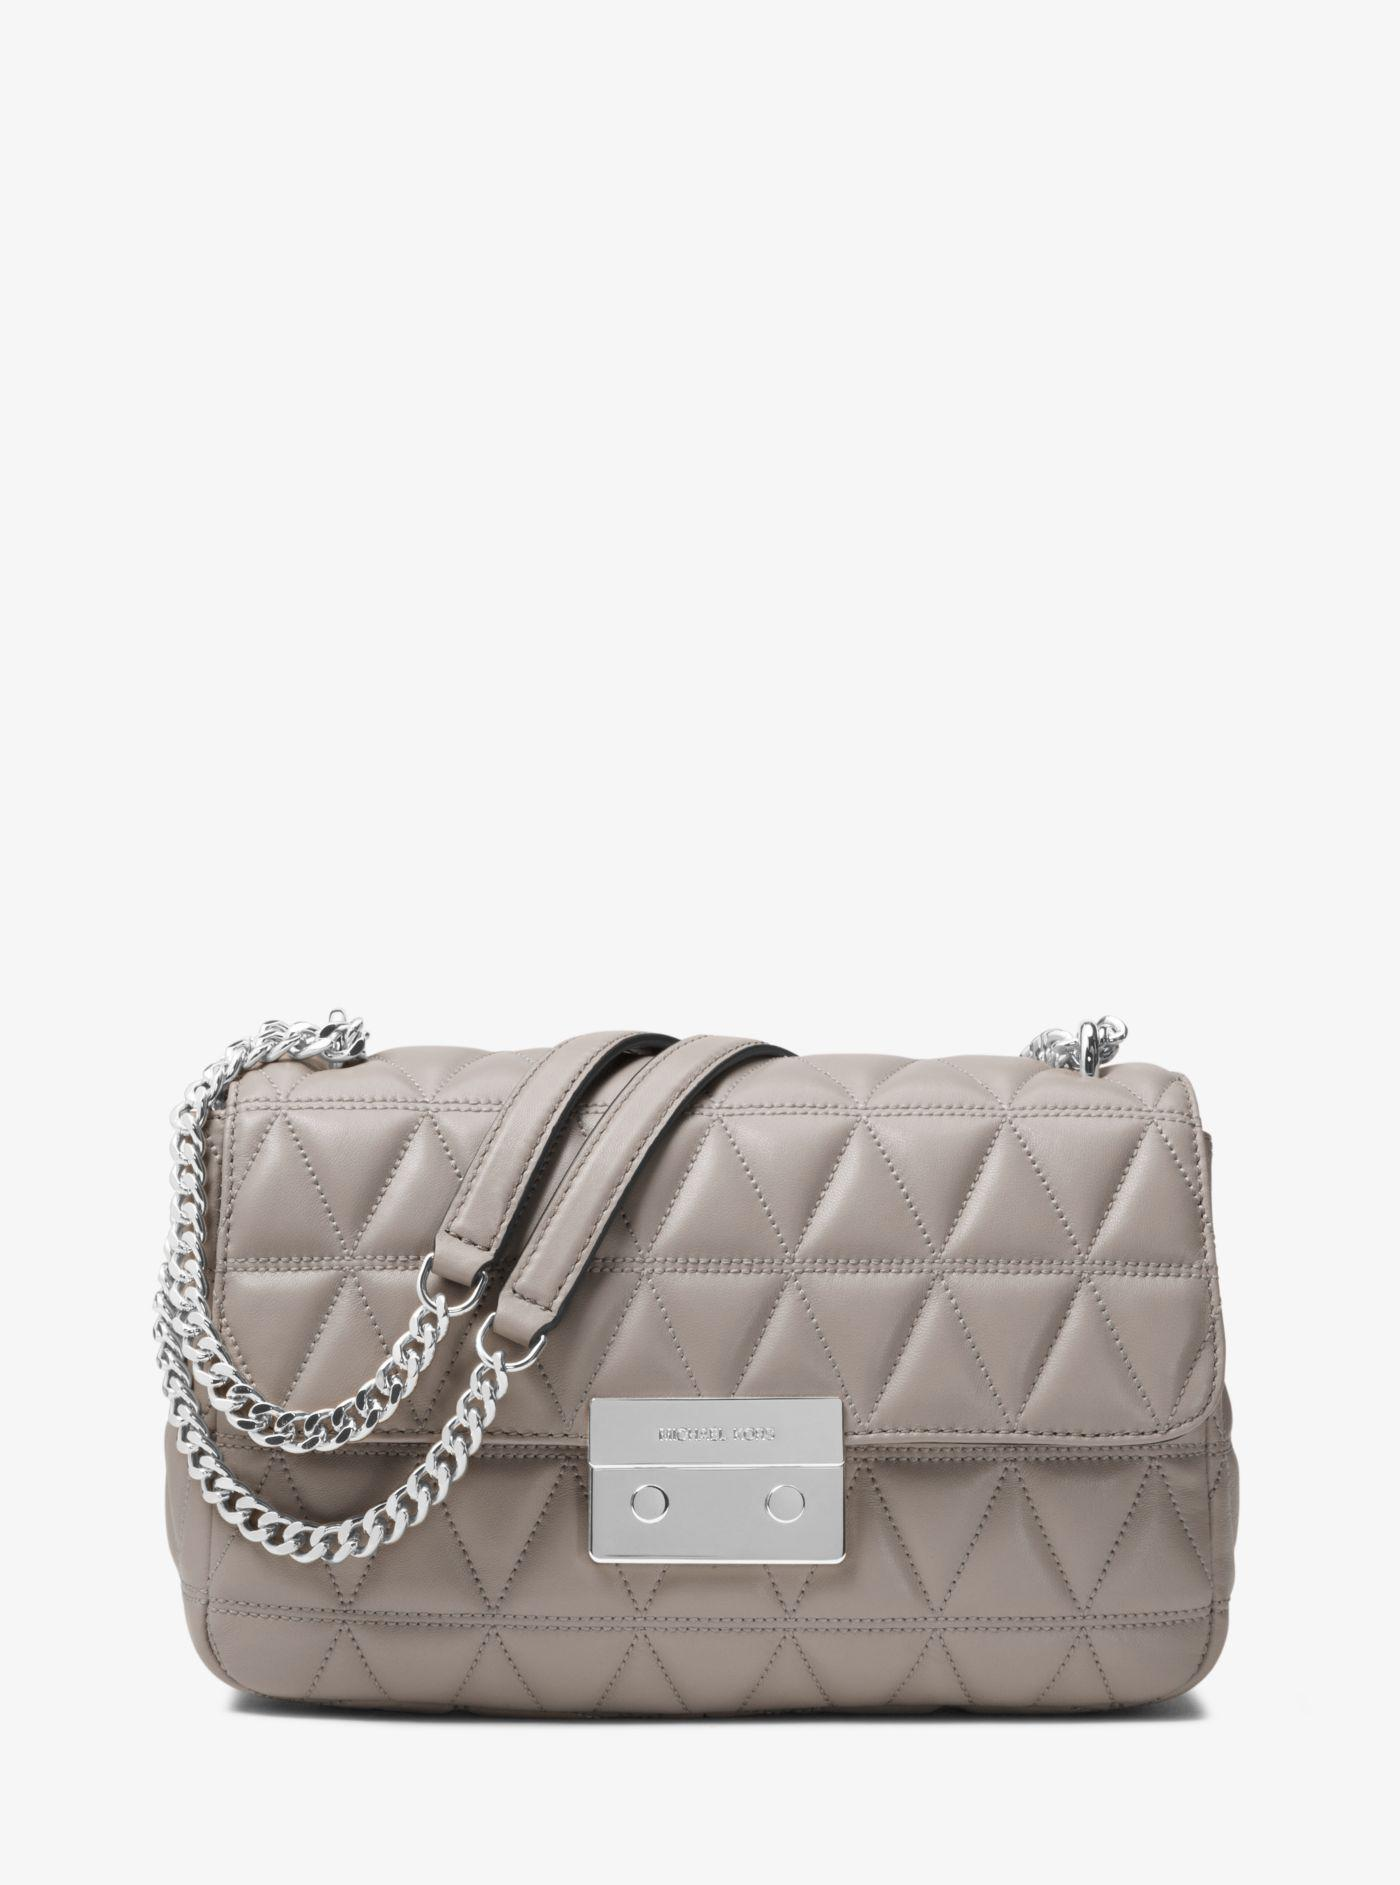 4554d4f94178 Michael Kors Sloan Large Quilted-leather Shoulder Bag in Gray - Lyst